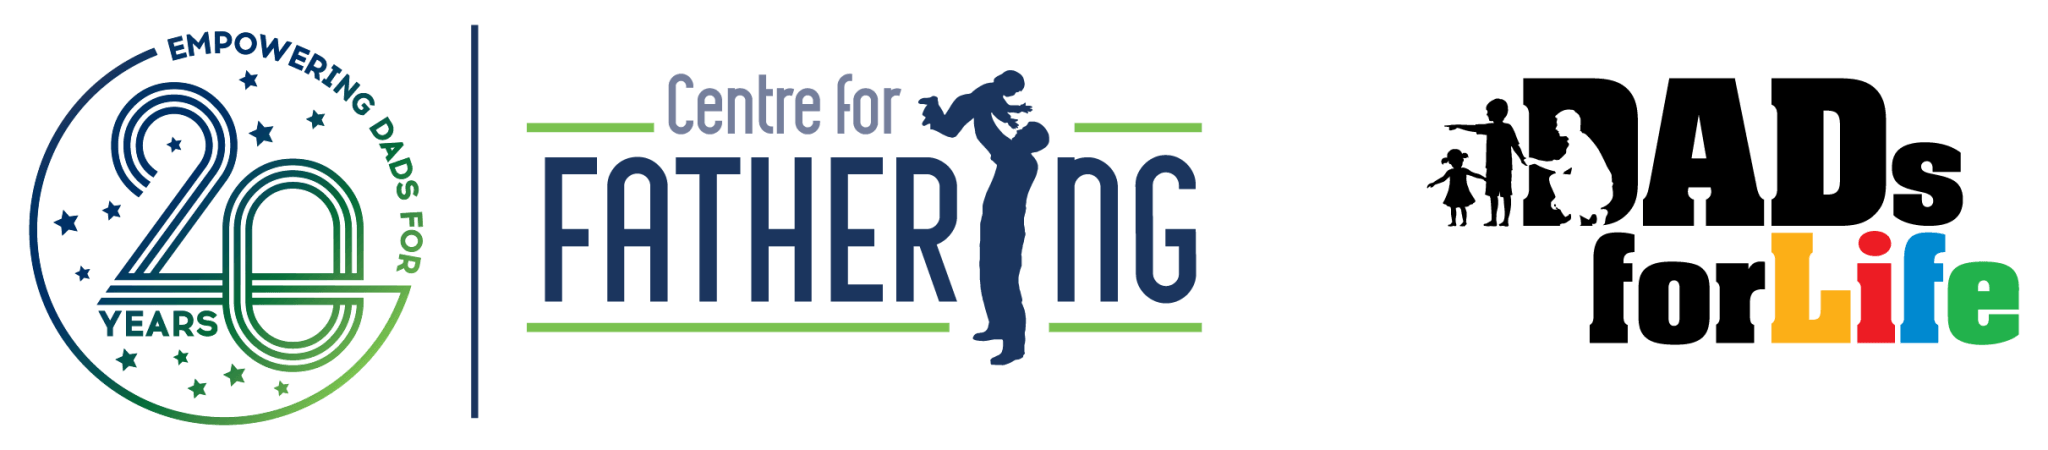 Centre for Fathering Ltd